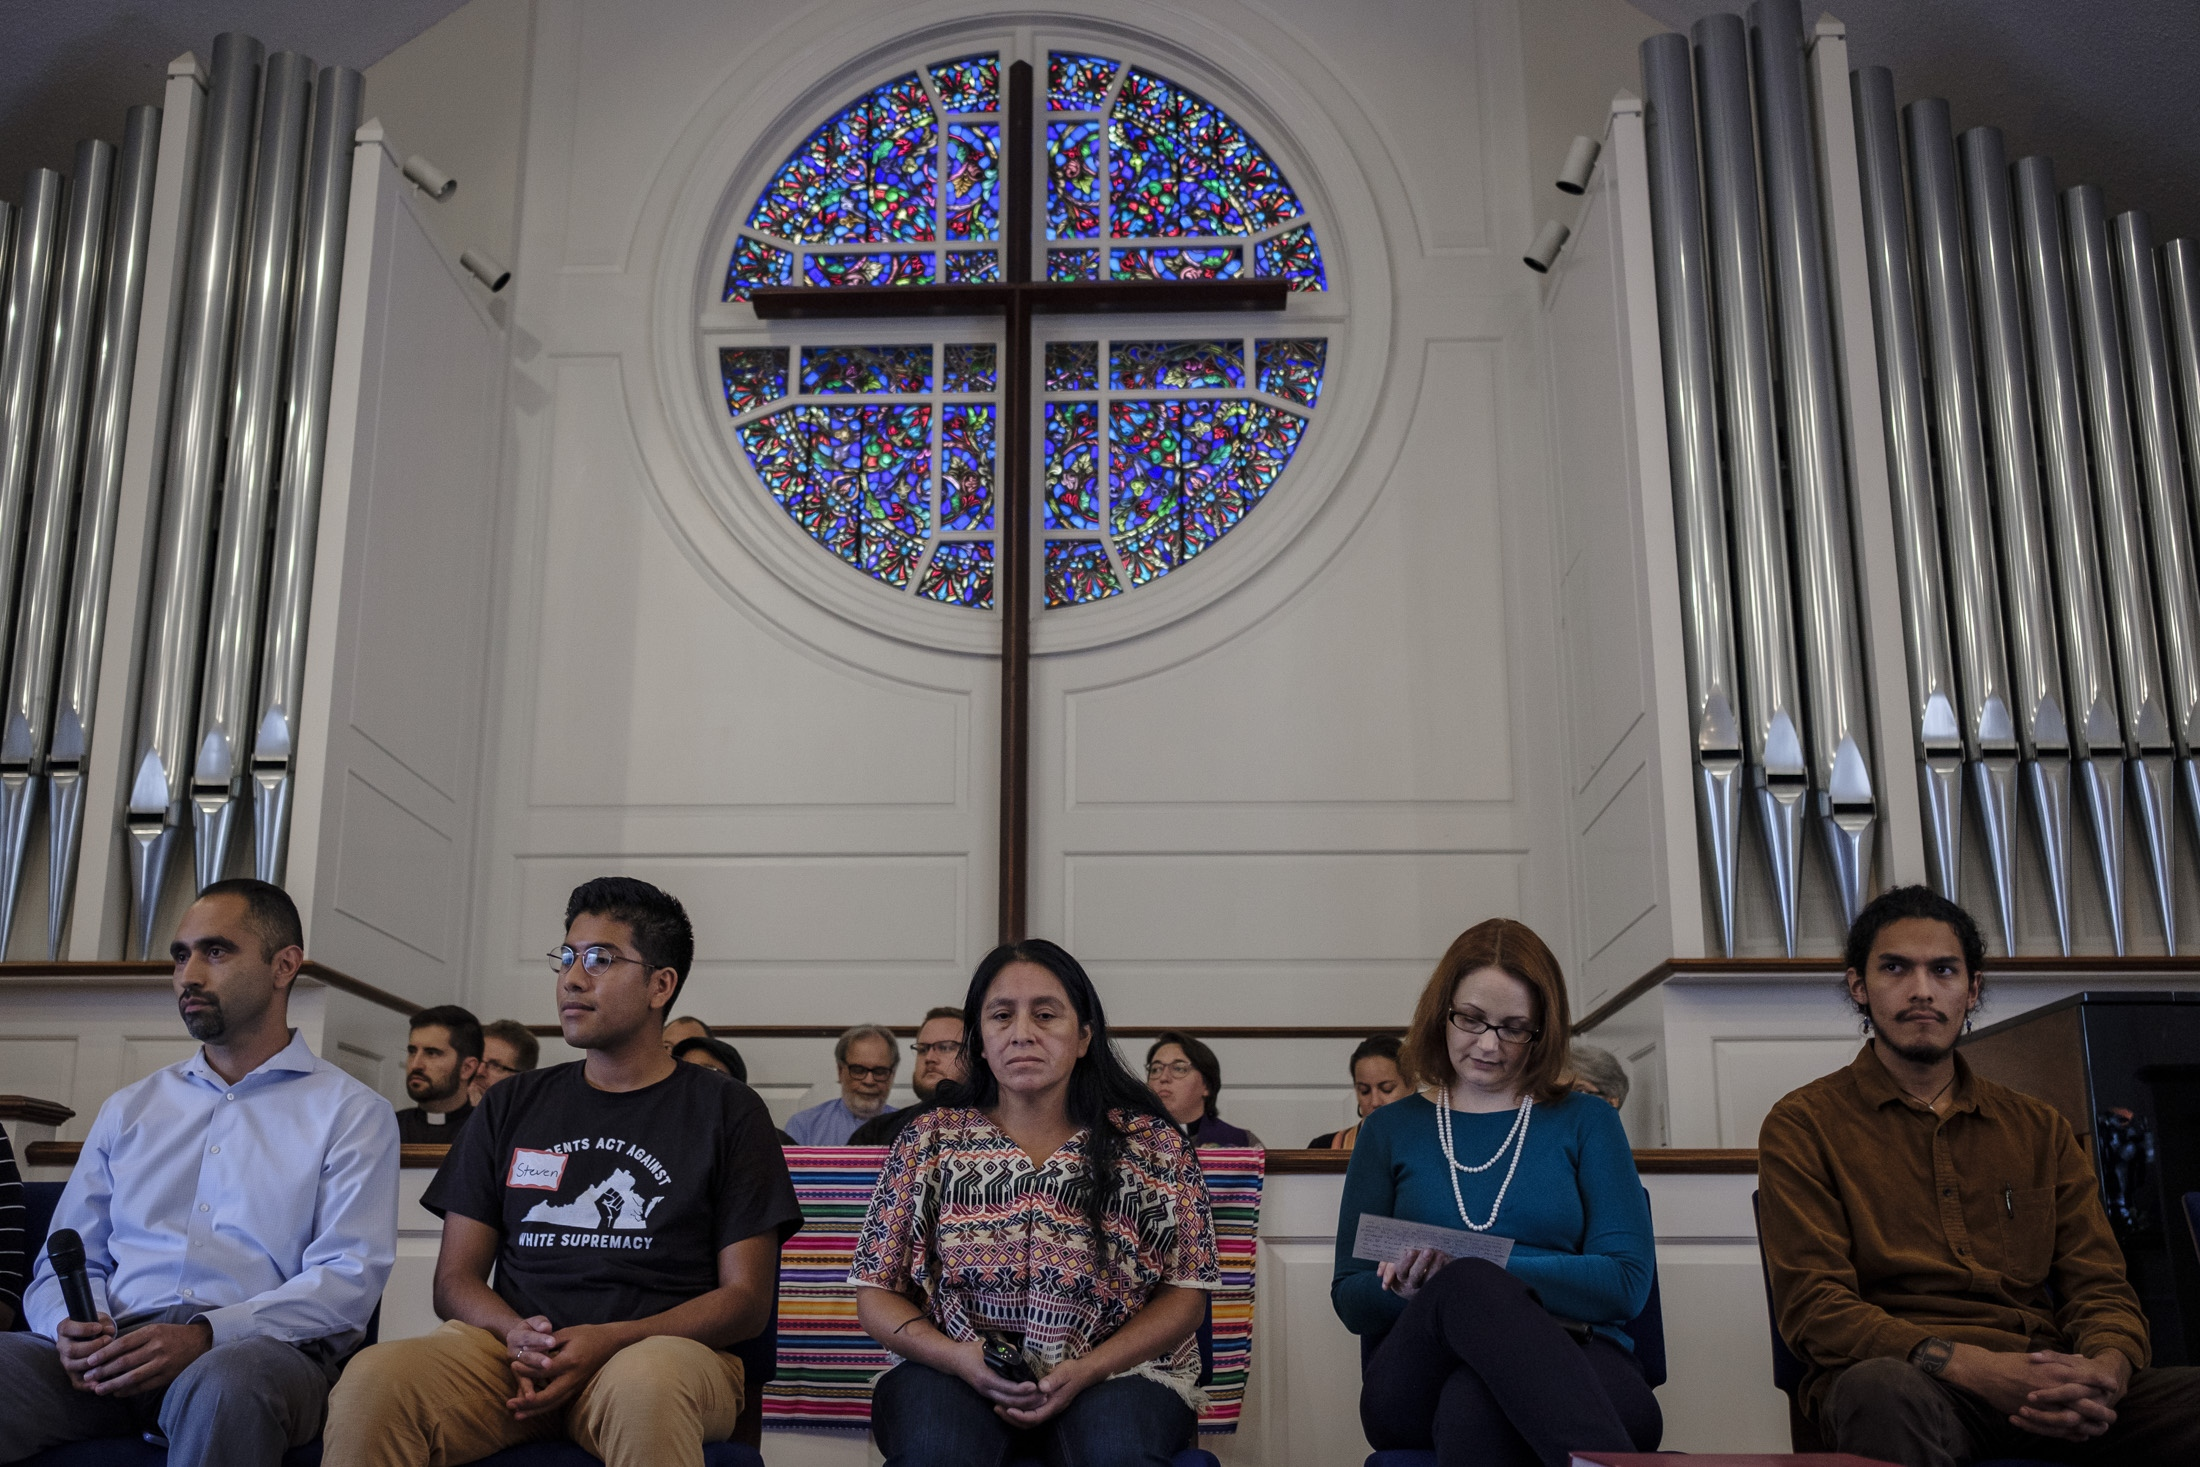 Maria about to speak during her press conference where they publicly express that Maria has been accepted into sanctuary by the Wesley Memorial United Methodist Church at Charlottesville. At her back Pastors of different religions beliefs and at her side her new lawyer Alina Kilpatrick and activists from the community.